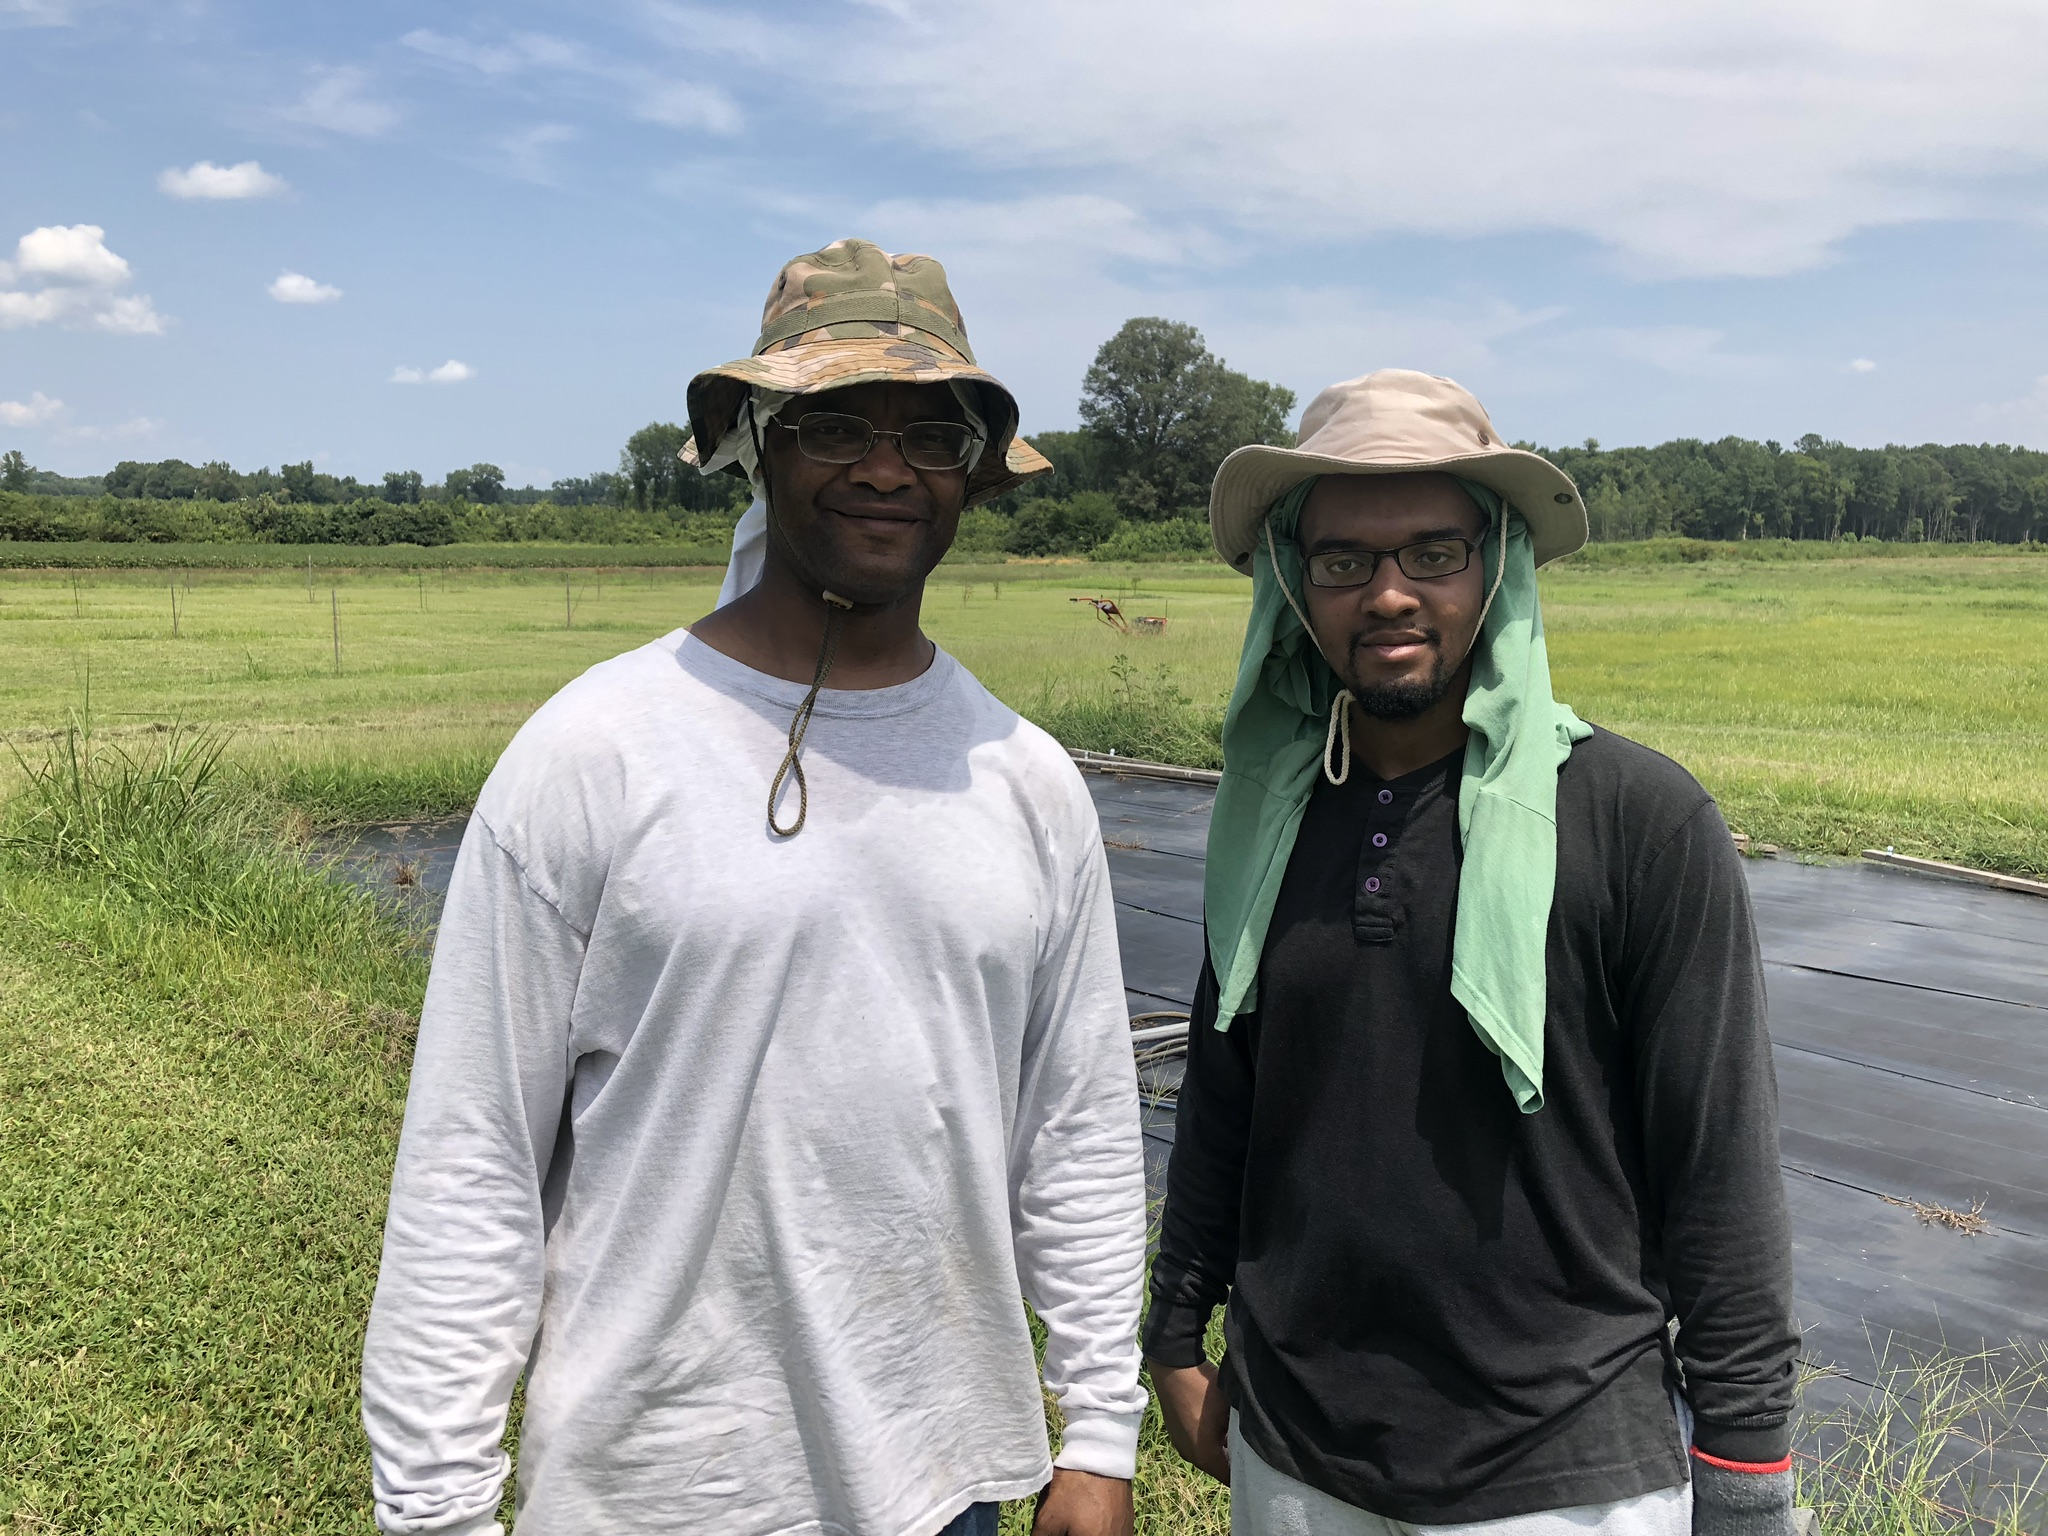 MUHAMMAD FAMILY FARM - The Muhammad Family Farm is located in Southampton County near the towns of Branchville and Boykins. The farm received a 0% SOIL loan in August 2019 to help them purchase much needed equipment for a new farmers market they are starting.Read more →